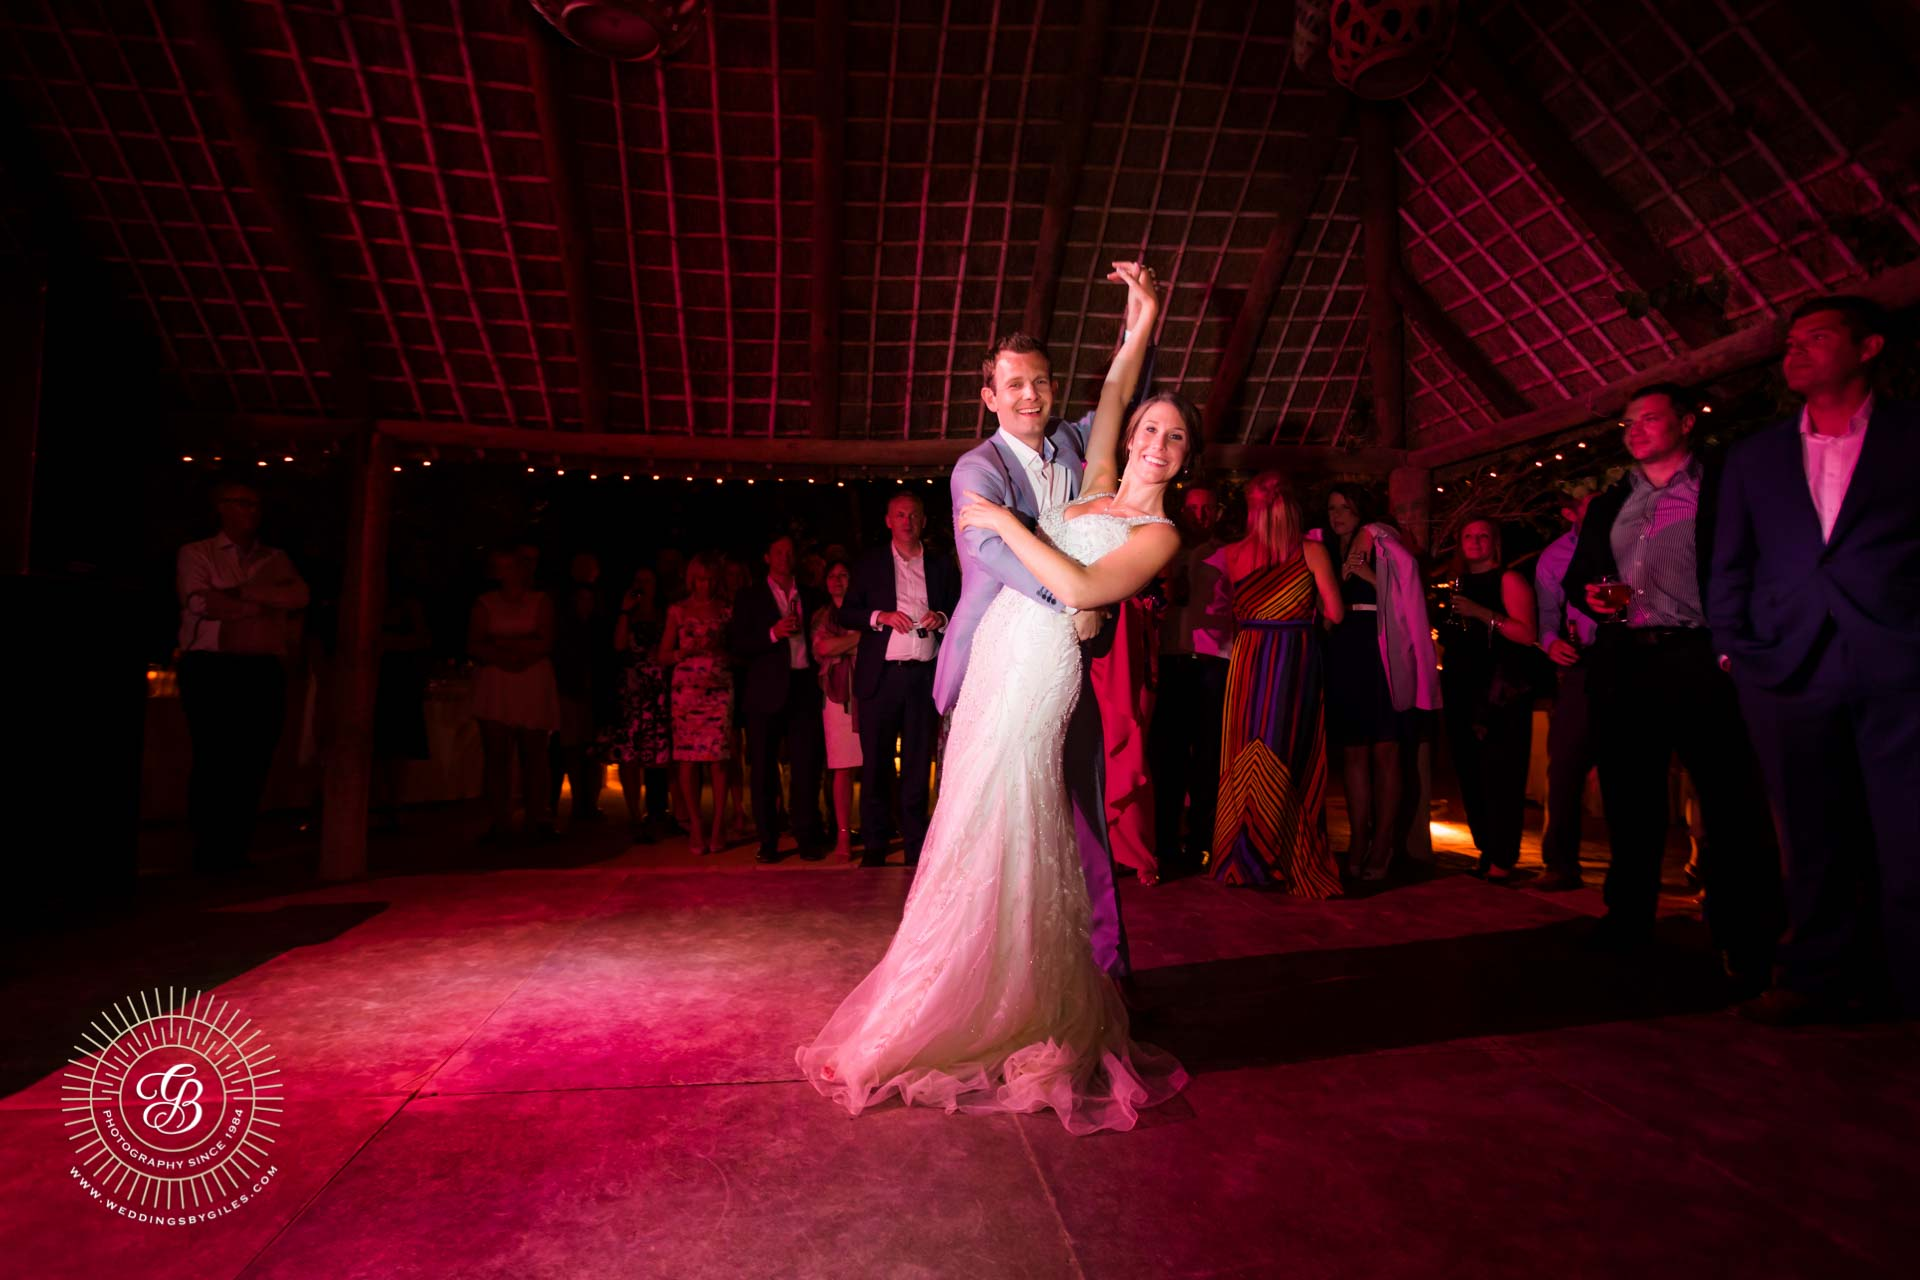 The first dance at Hacienda de San Rafael